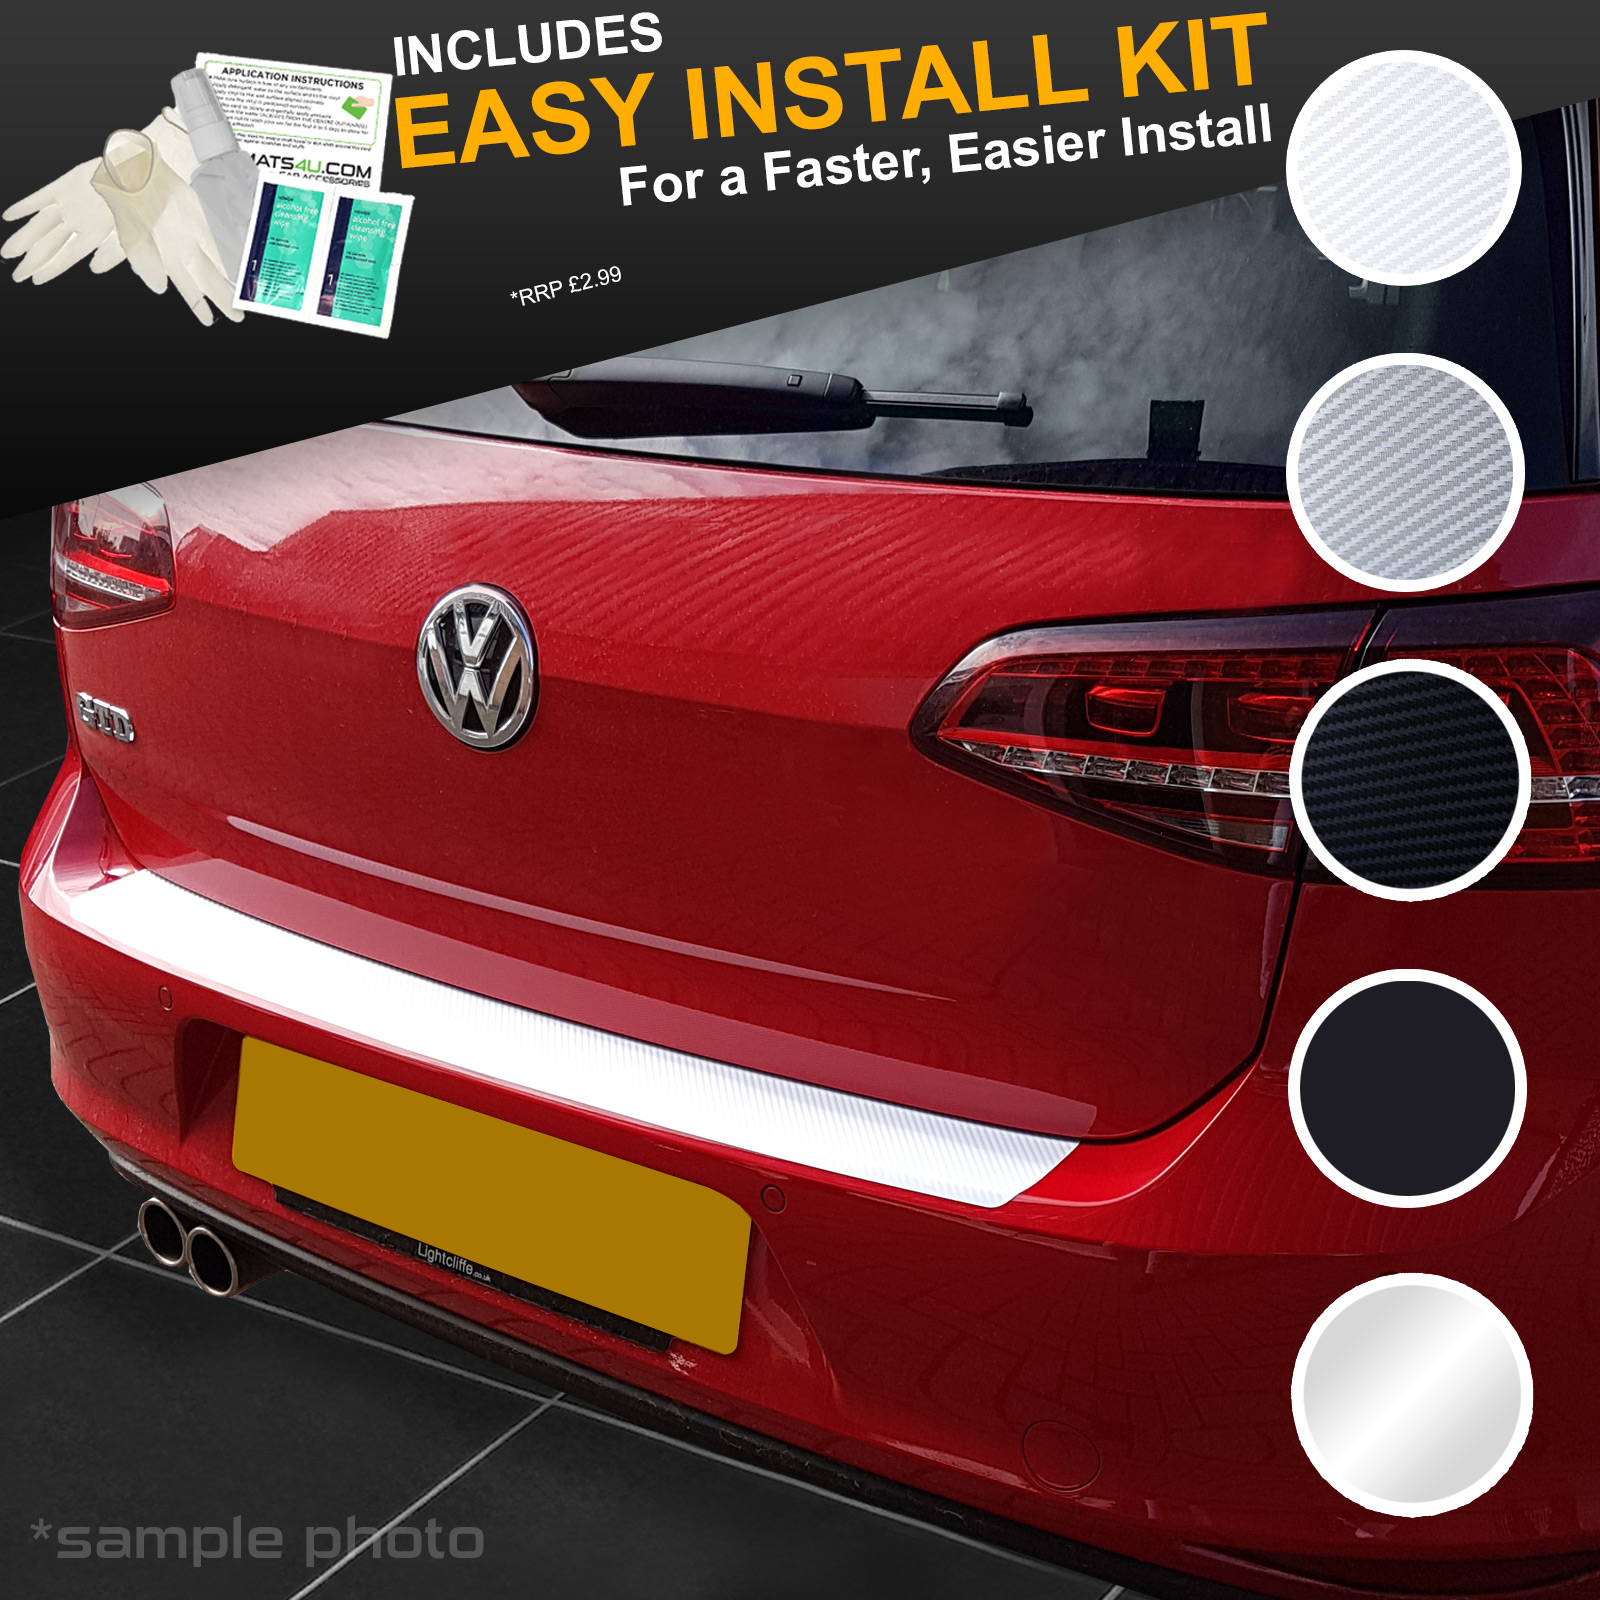 carmats4u Black Carbon Vinyl Bumper Lip Protector//Self Adhesive Easy Install Kit Included